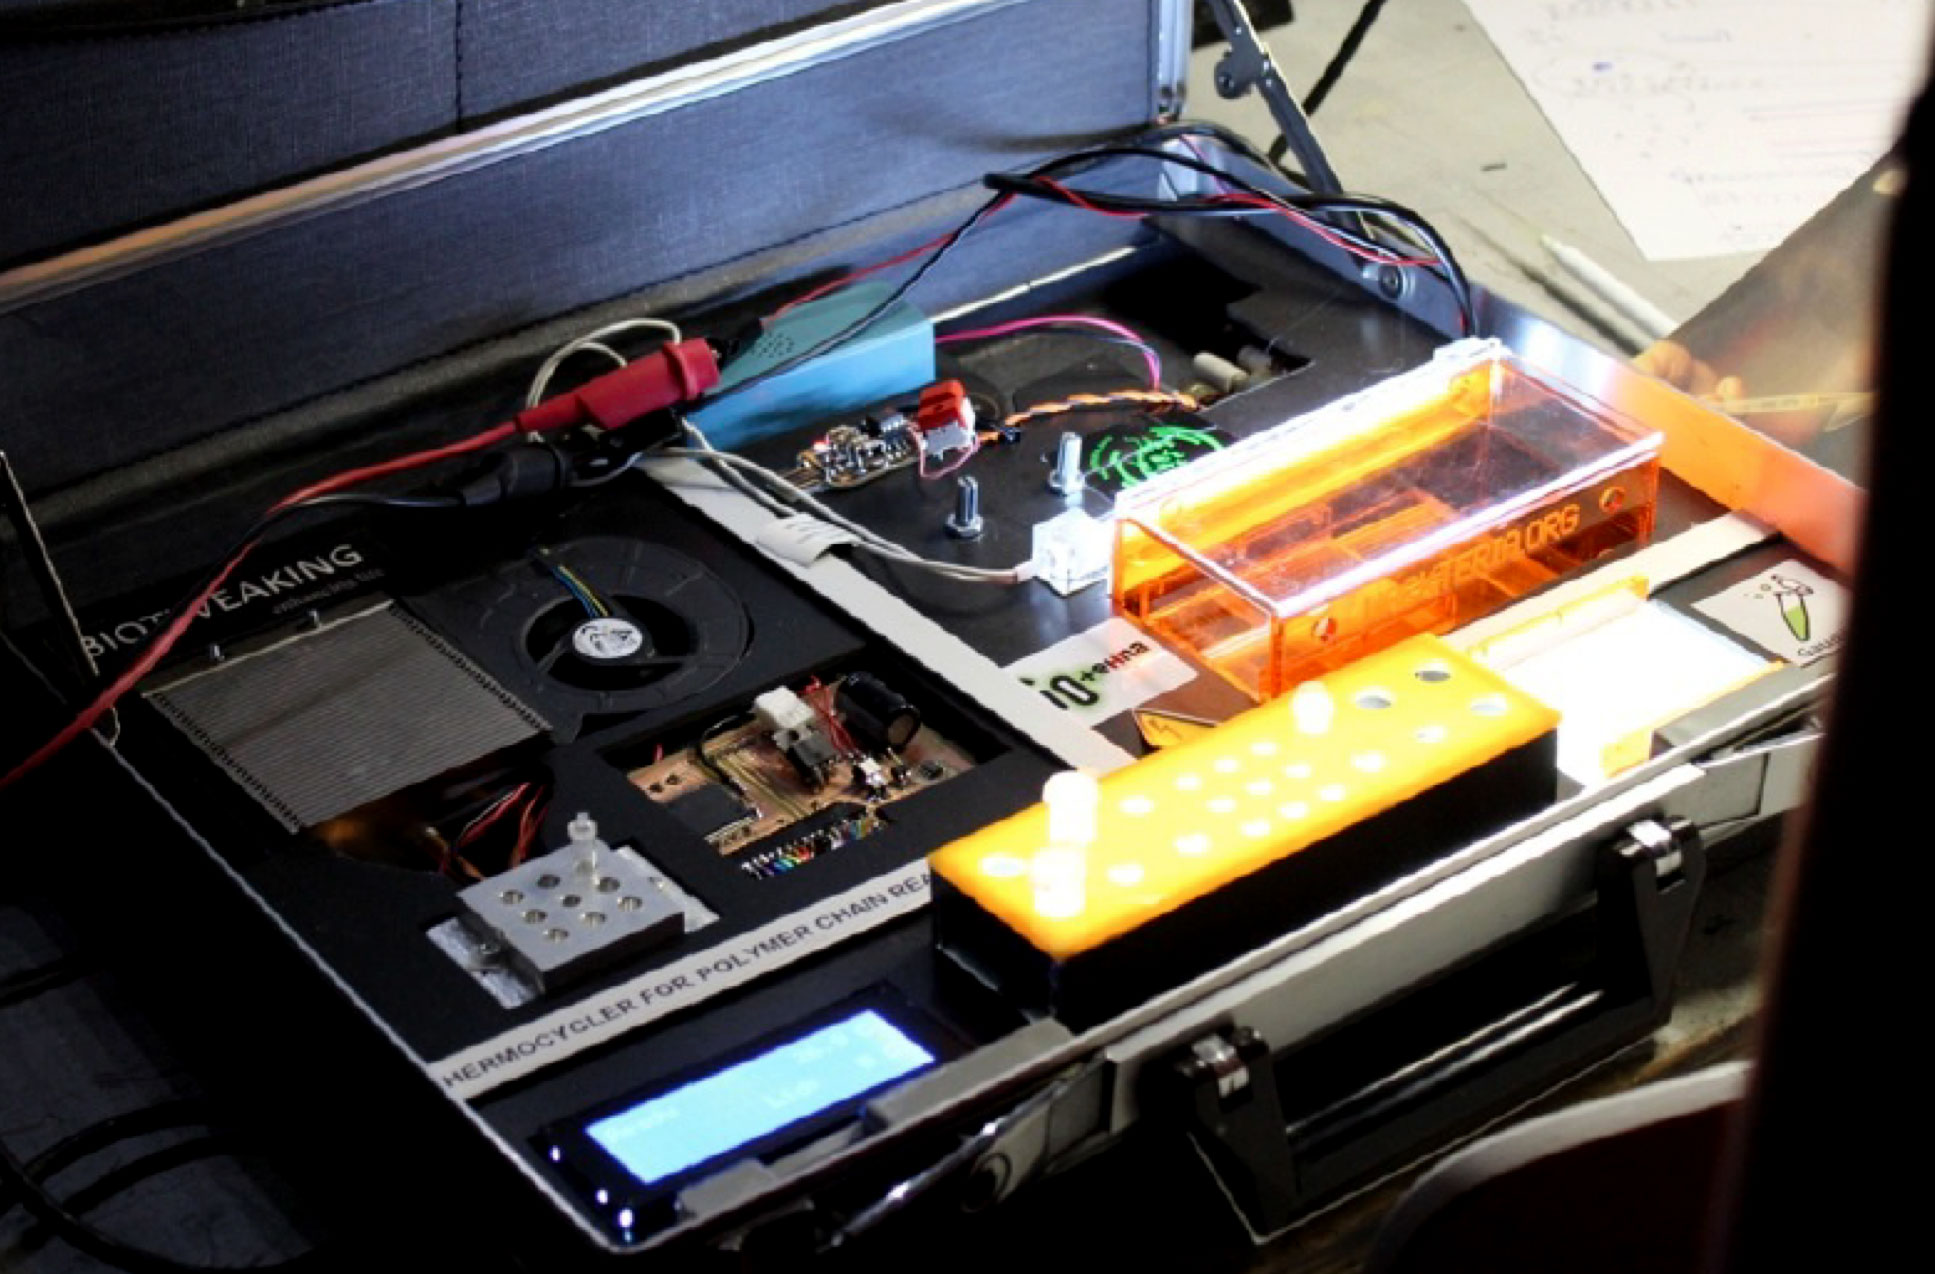 Lab in a Briefcase, Mobile Labs Hackathon (Hackteria)